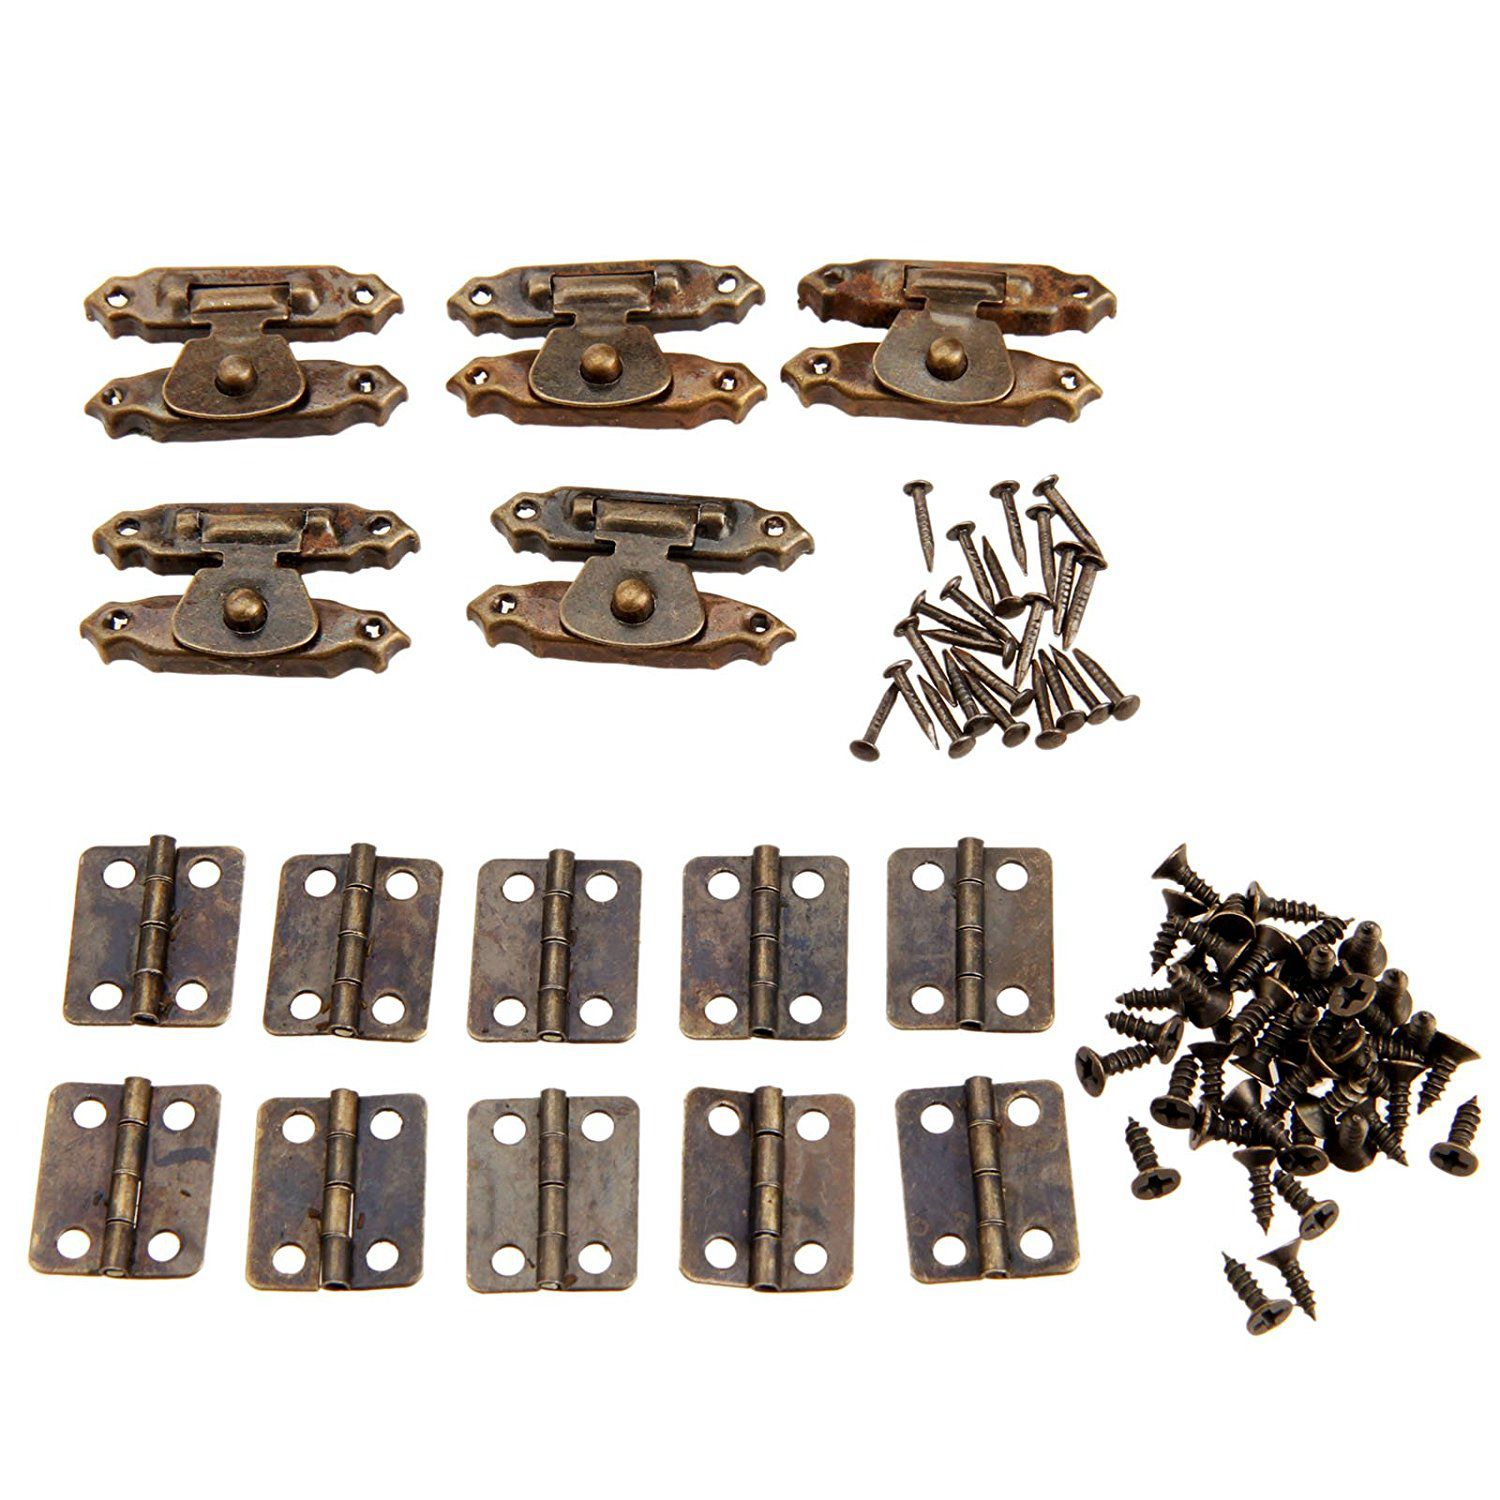 5pcs Antique Bronze Antique Cabinet Door Latch Hasps Decorative With 10Pcs Retro Door Hinges